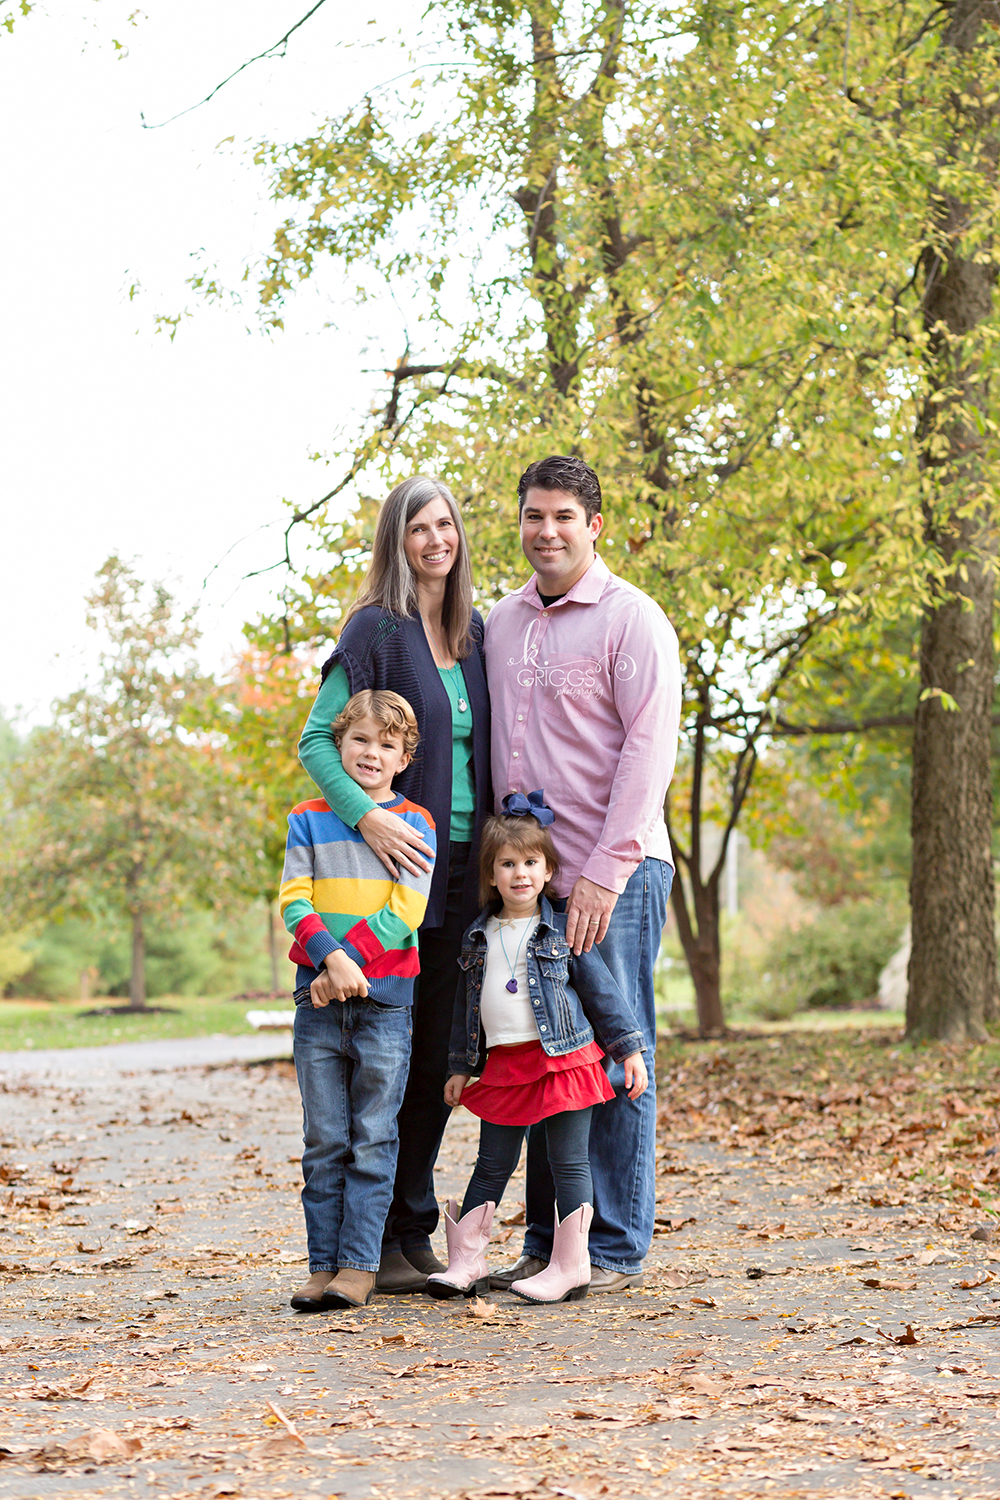 Family of 4 standing in park | St. Louis Photography